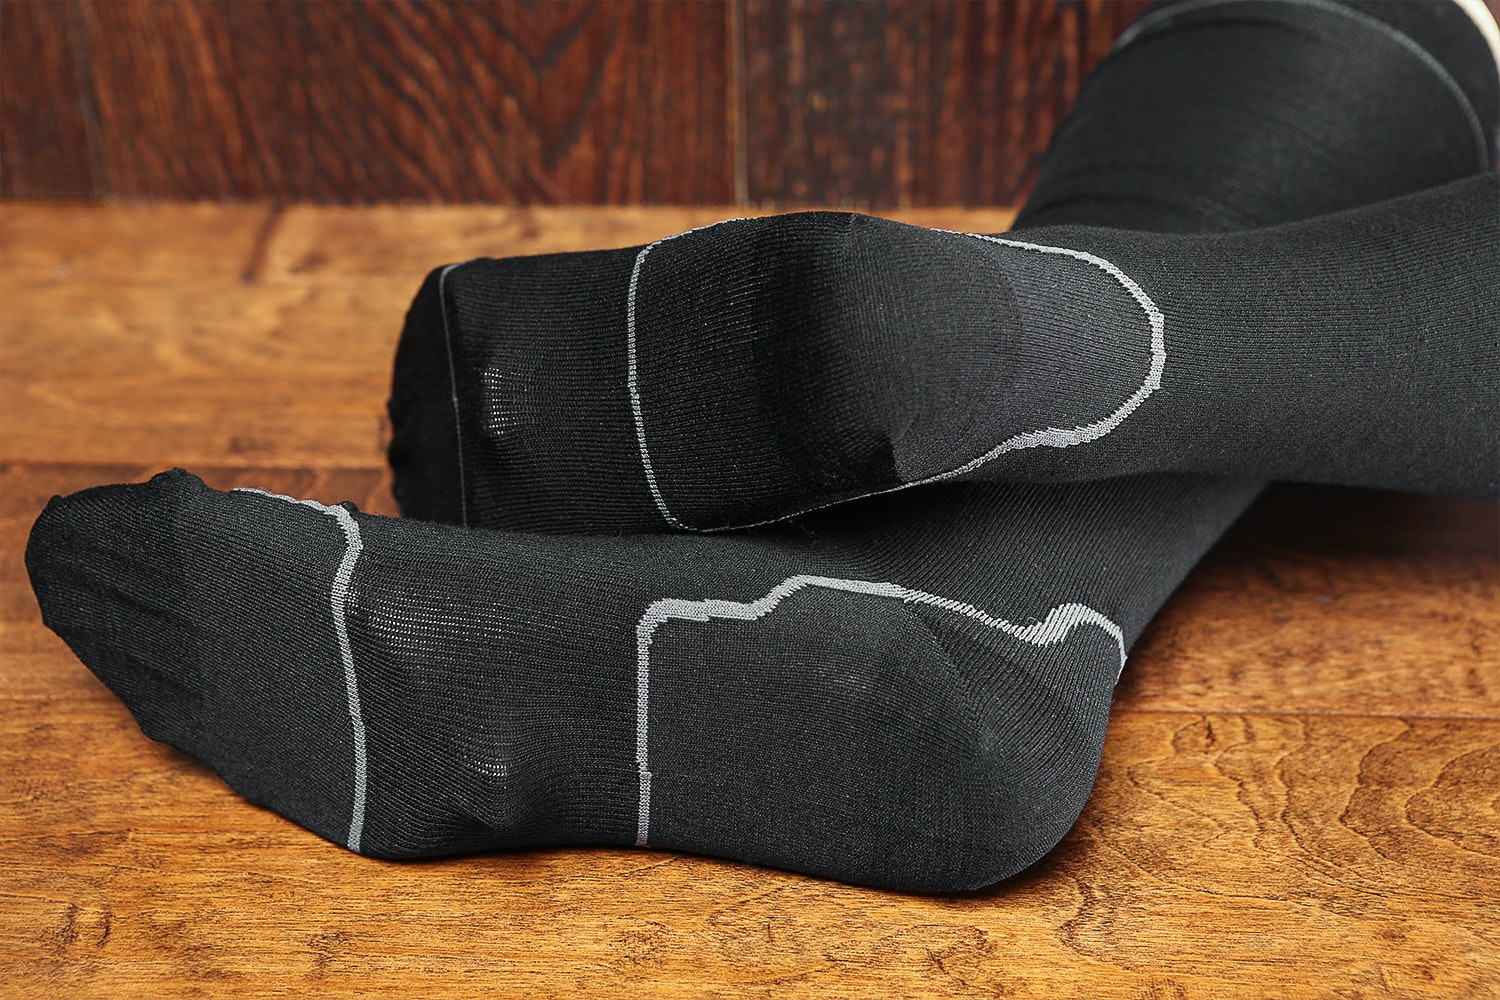 Darn Tough Ski & Snowboard Socks